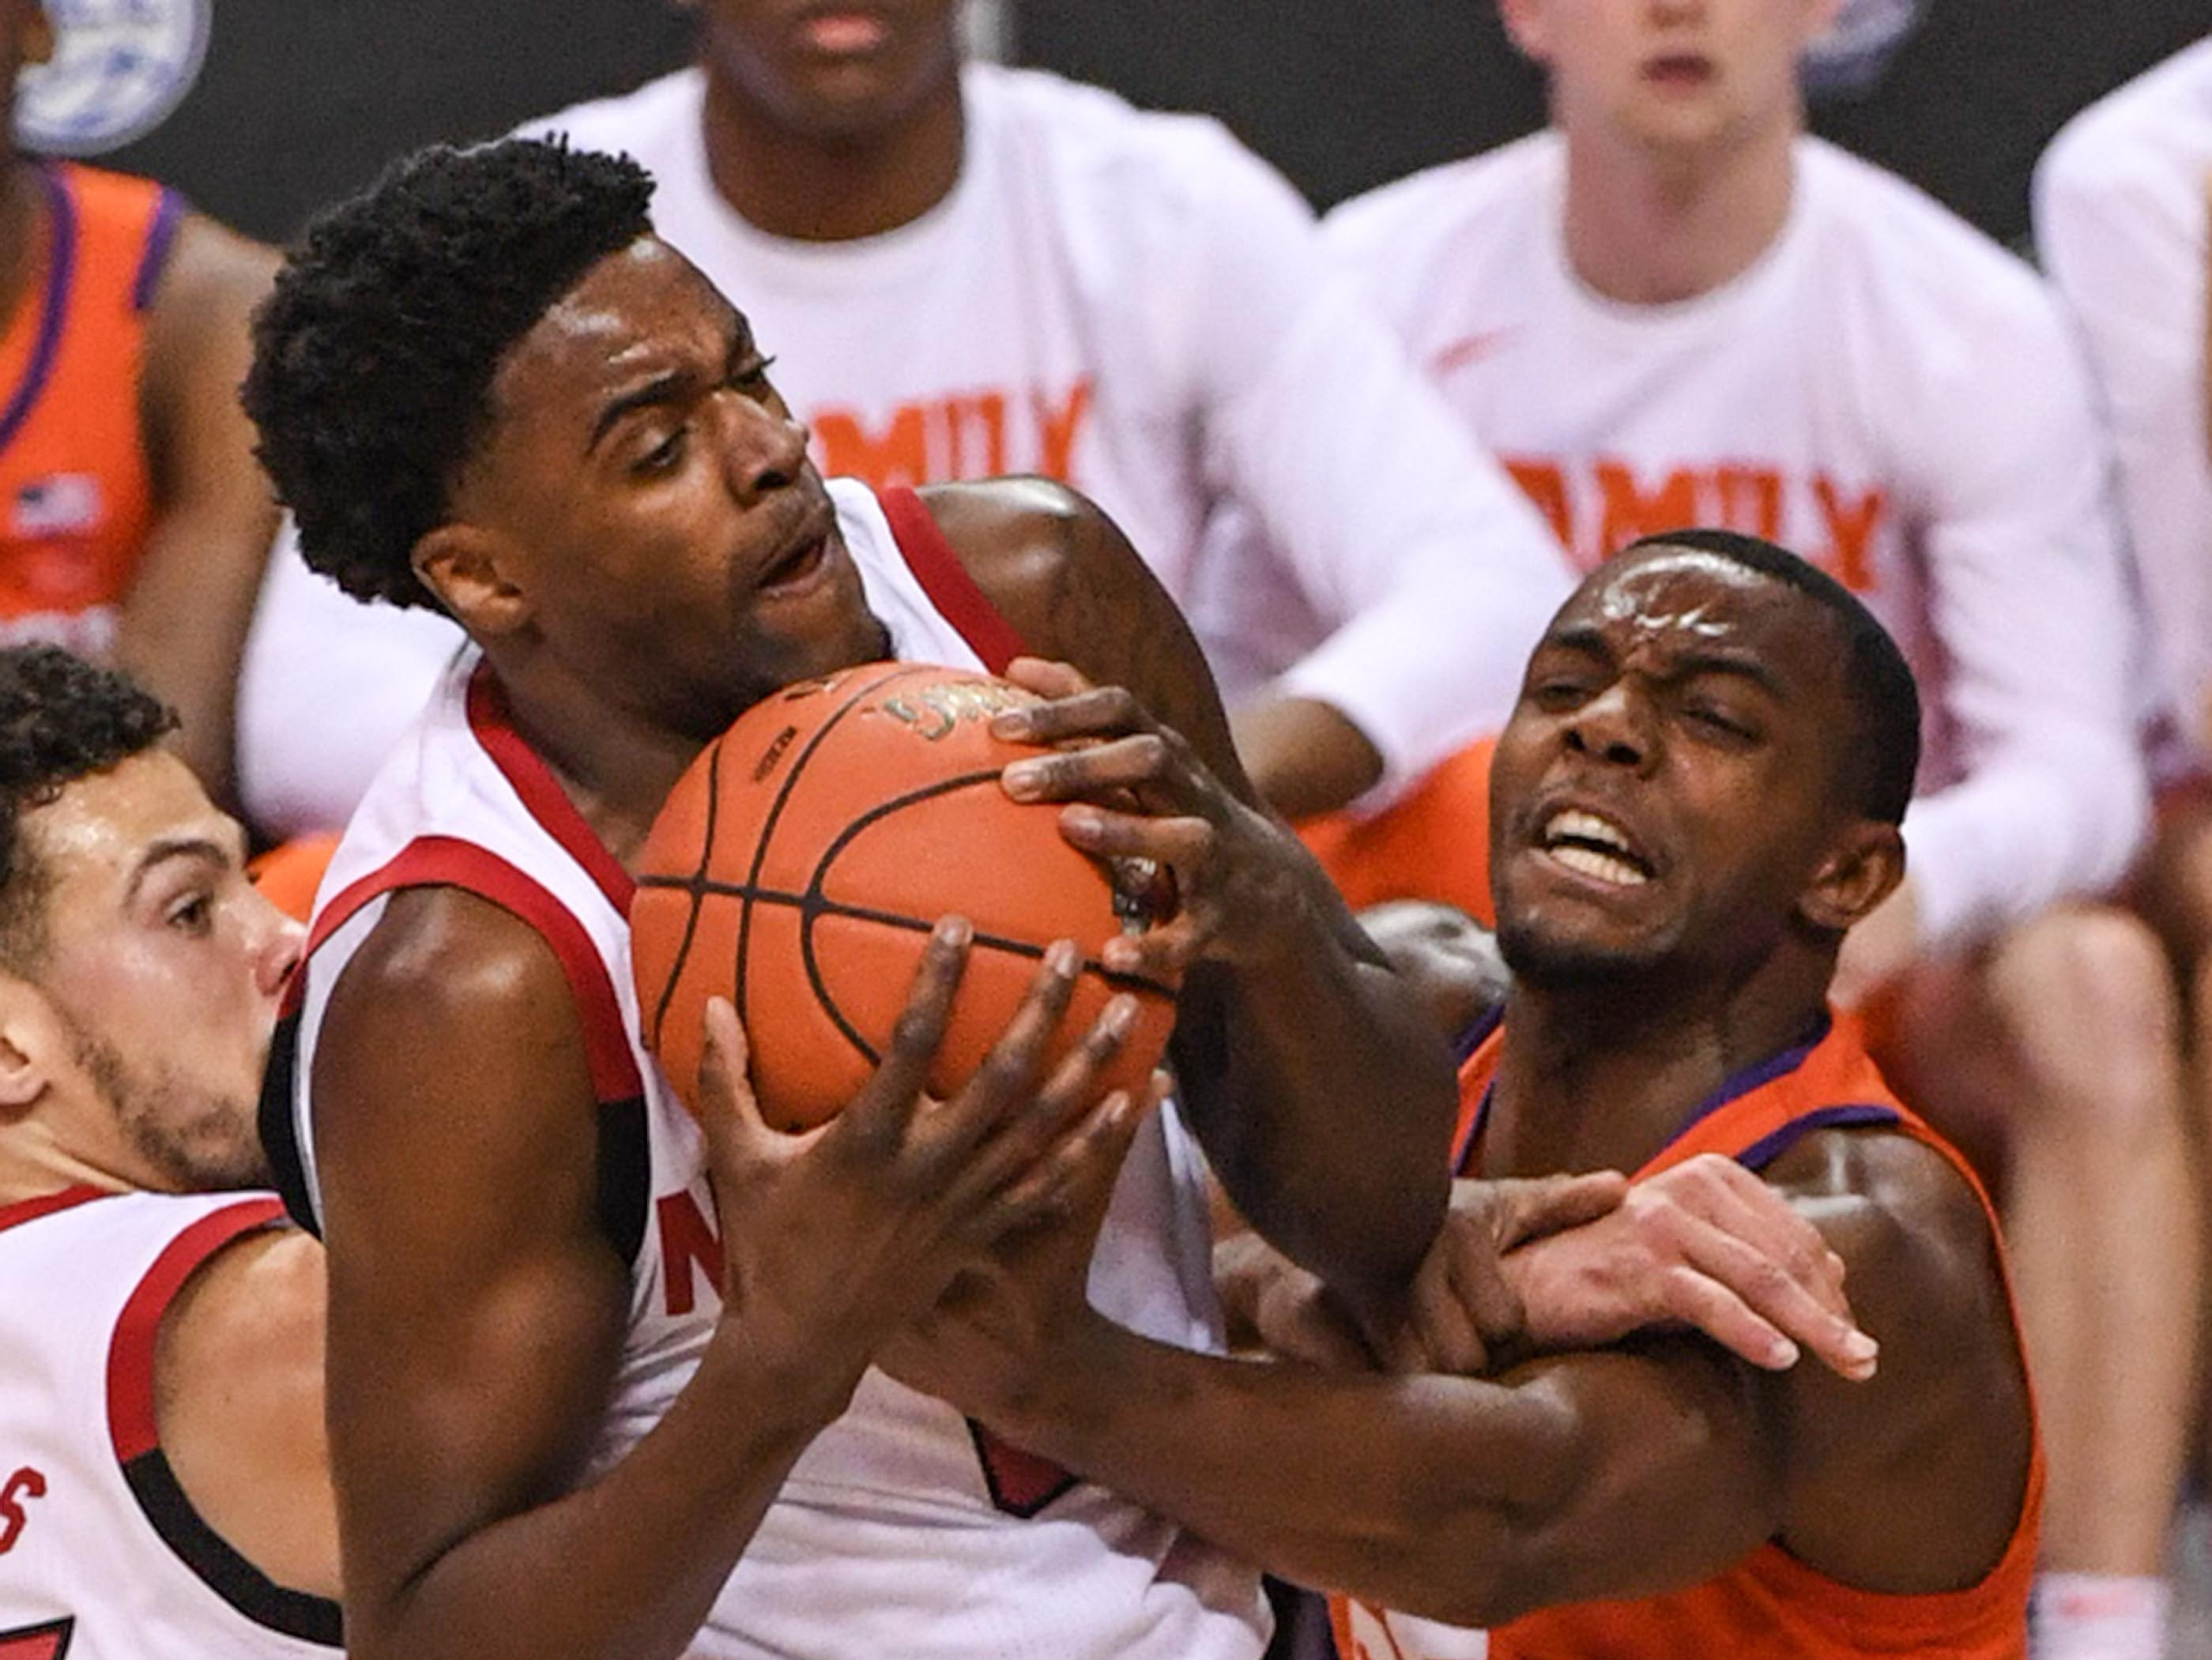 N.C. State guard Torin Dorn(2) rebounds near Clemson forward Aamir Simms (25) during the second half at the Spectrum Center in Charlotte, N.C. Tuesday, March 12, 2019.